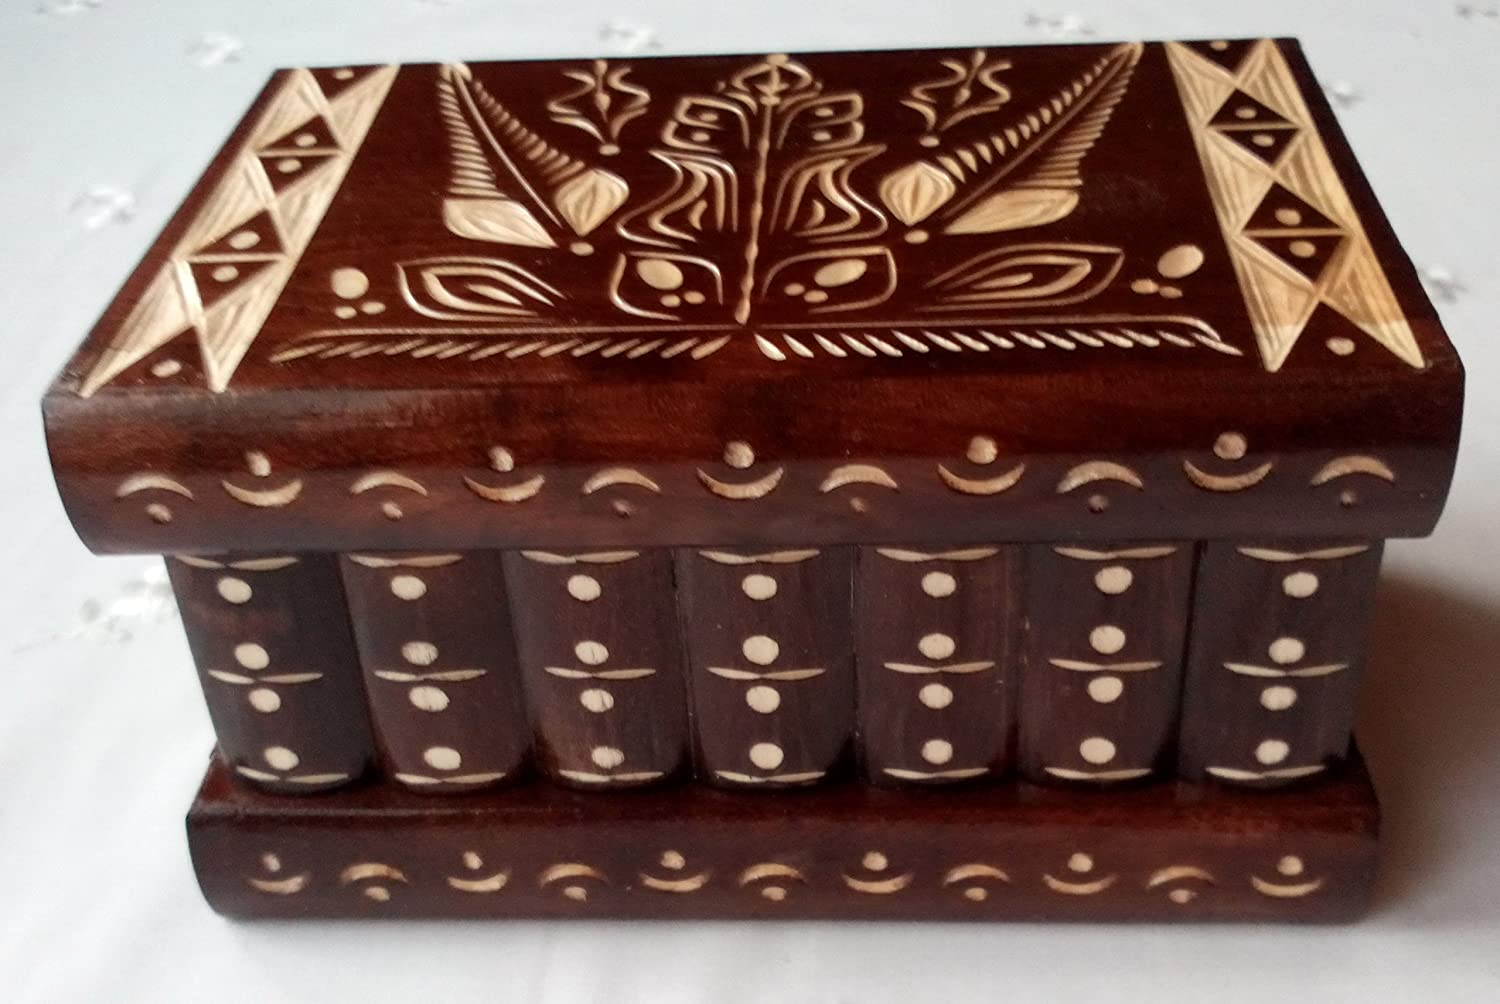 New brown puzzle box magic mystery secret box tricky handcarved wooden box case jewelry box home decor brain teaser treasure